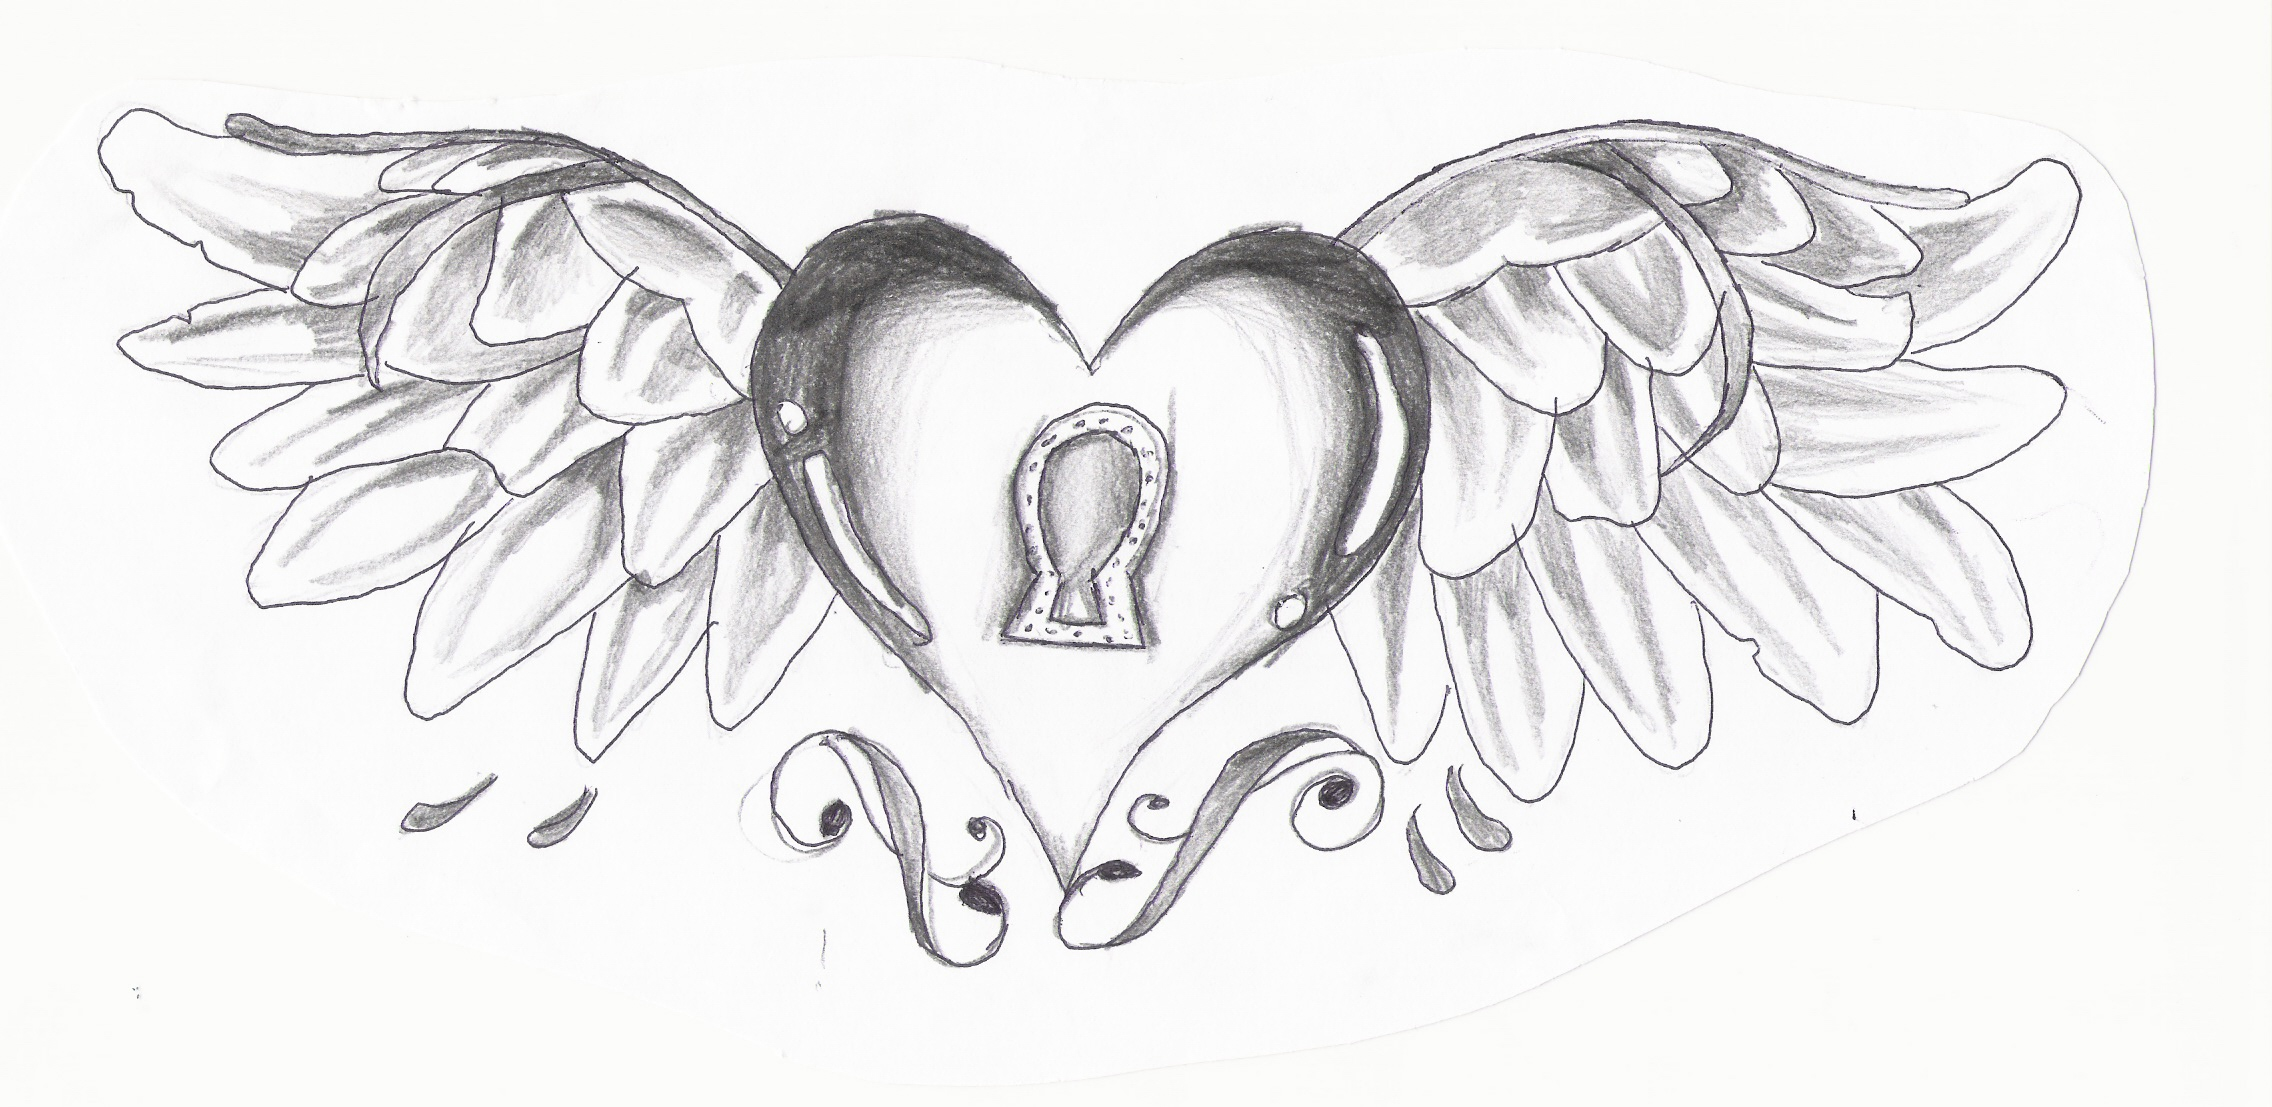 Heart With Wings by FeeOhNah on DeviantArt